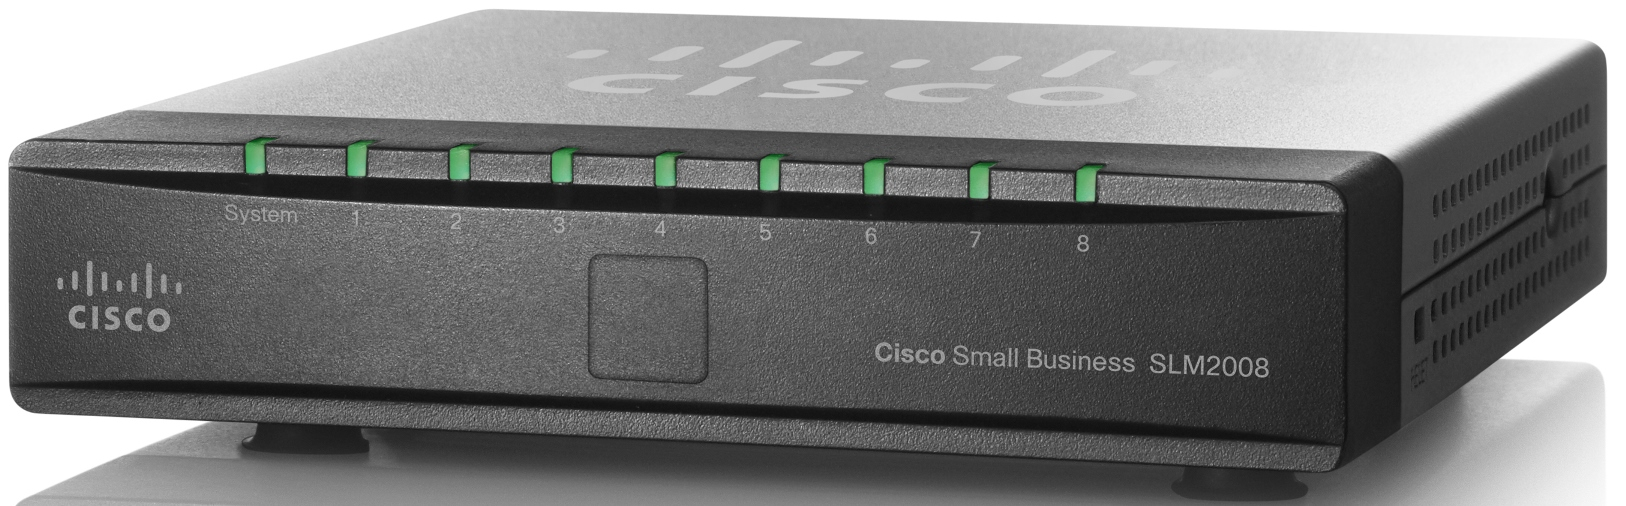 Cisco SG200-08, 8xGigabit Smart, SLM2008T-EU